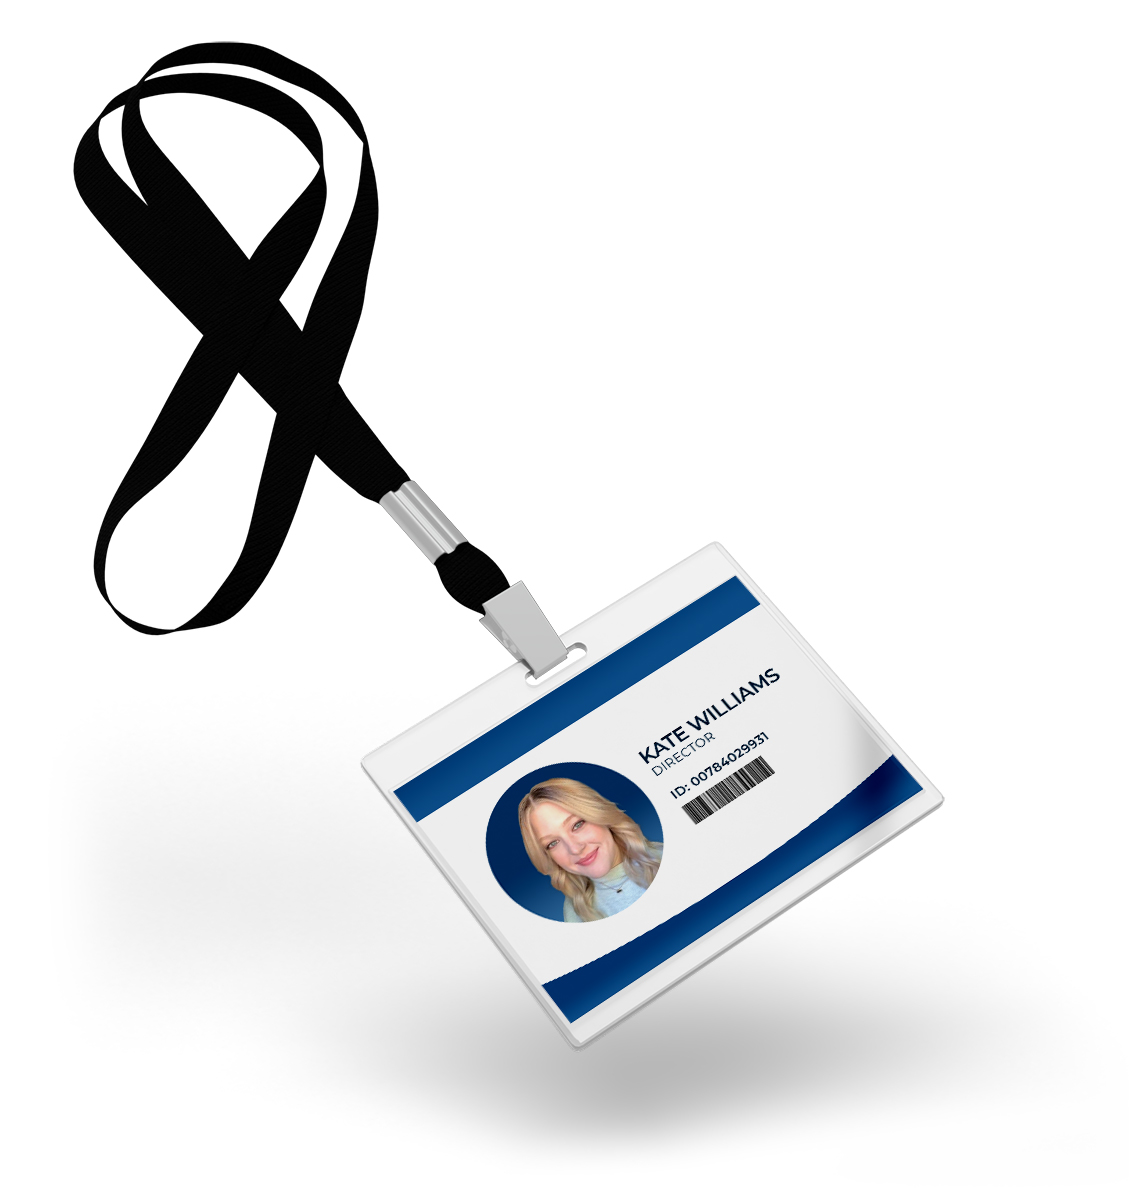 Virtual Headshot used in ID badge